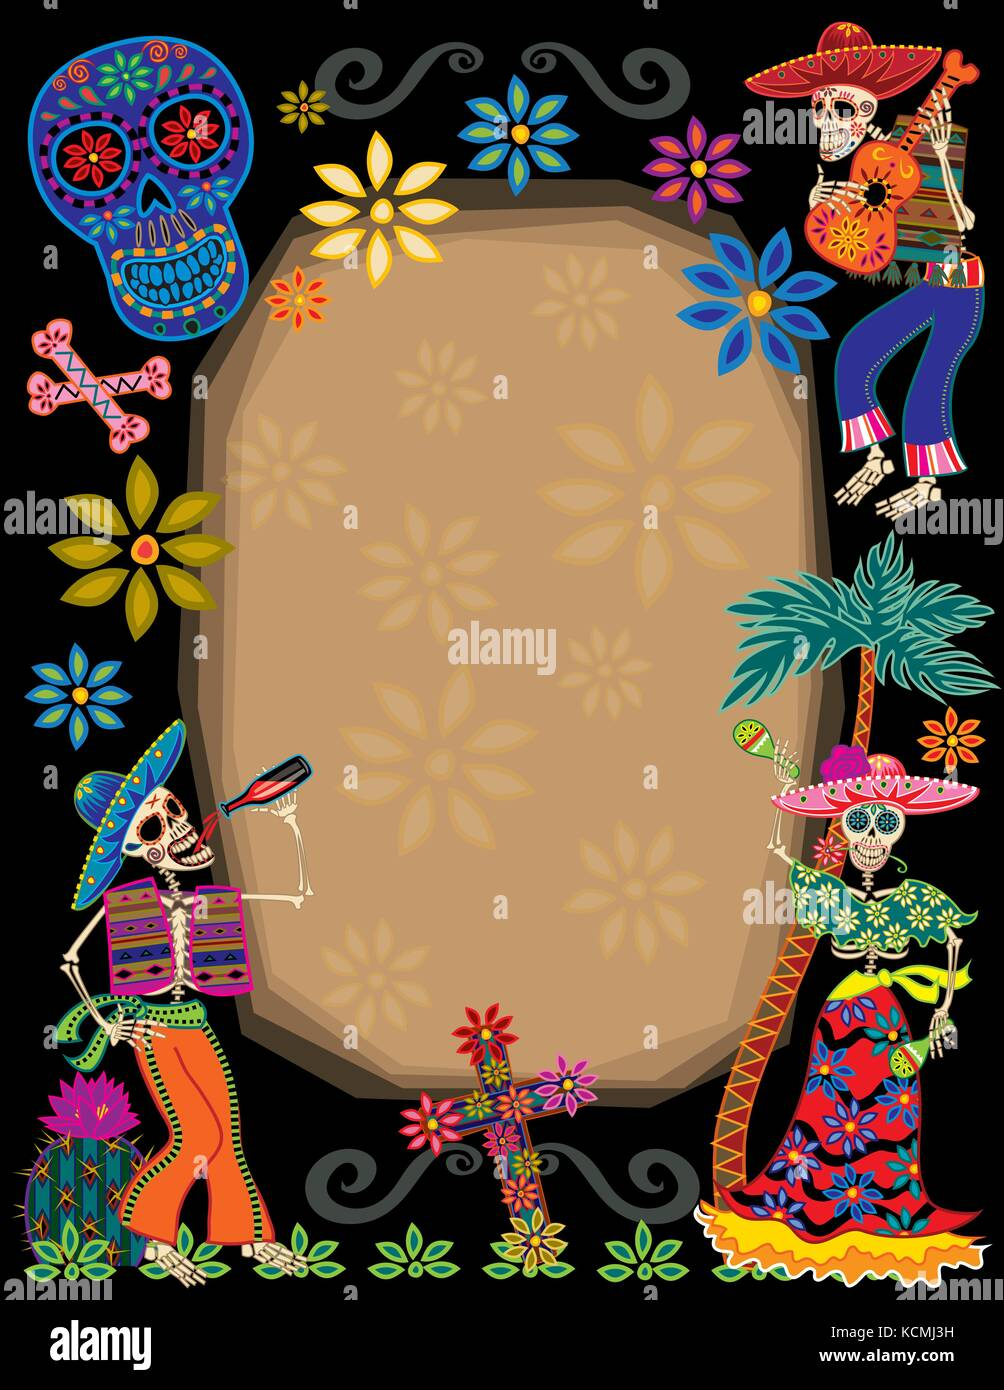 Day Of The Dead Party Border Stock Vector Art Illustration